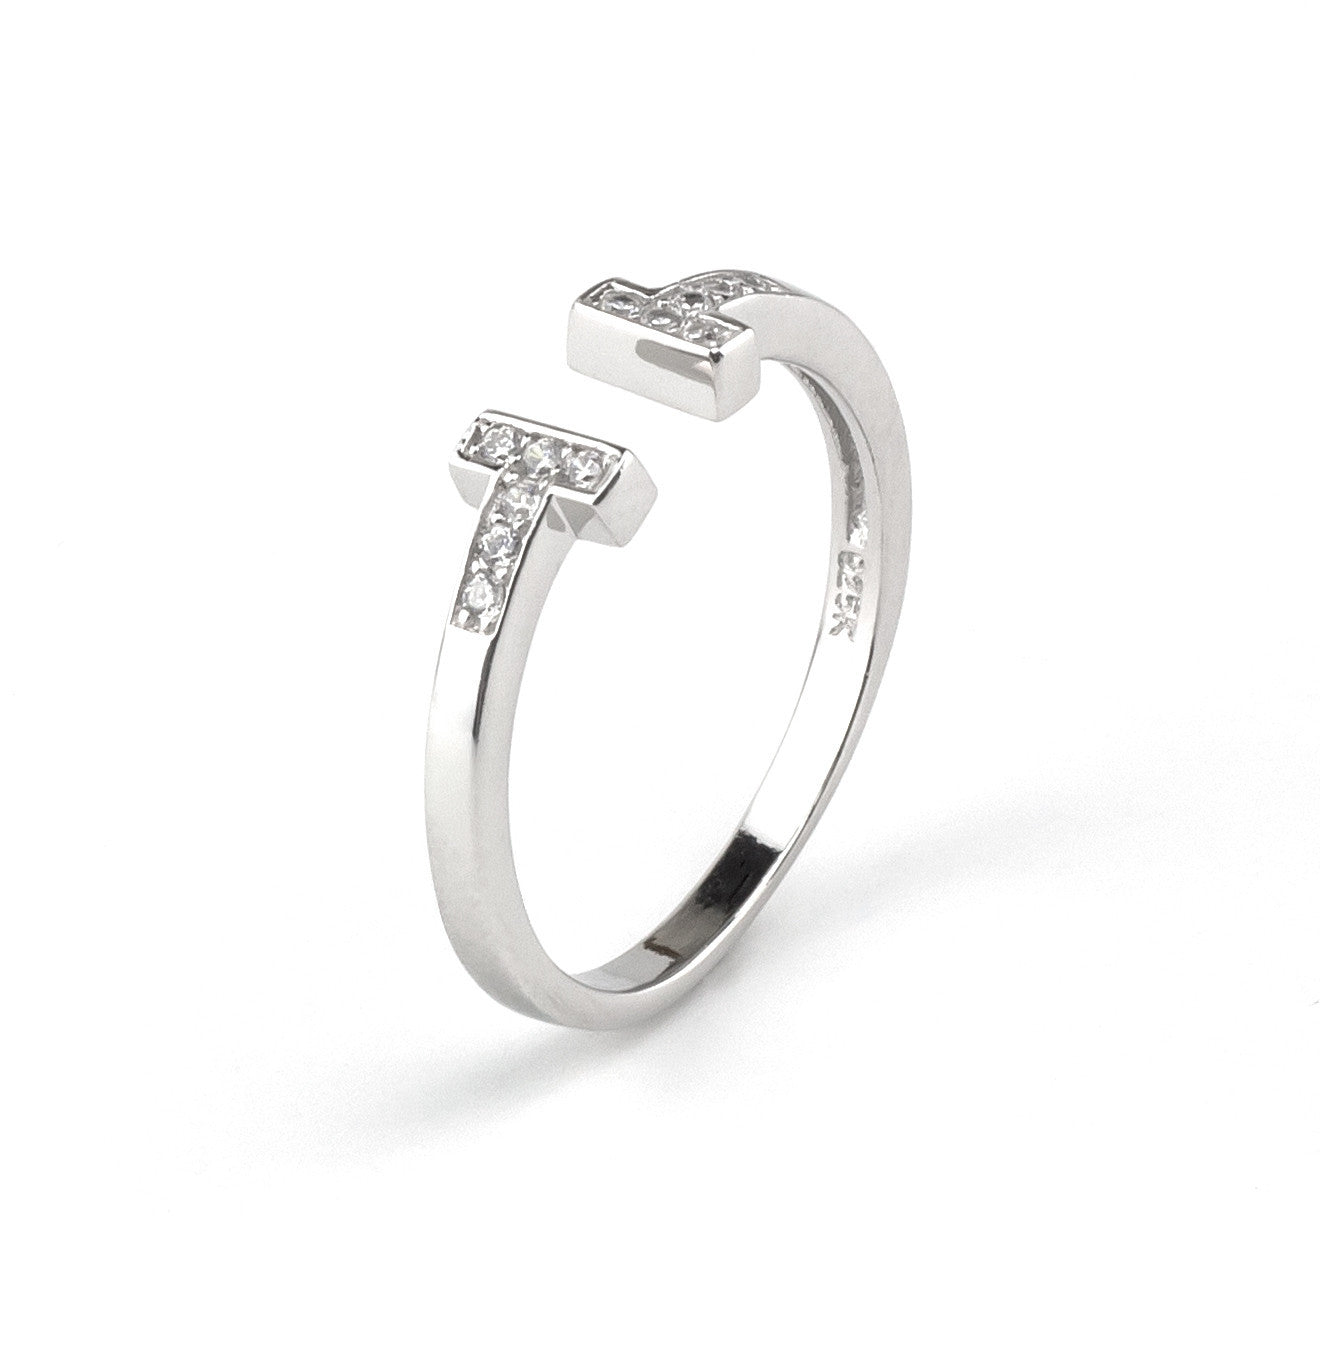 Classy Ring In Silver 925